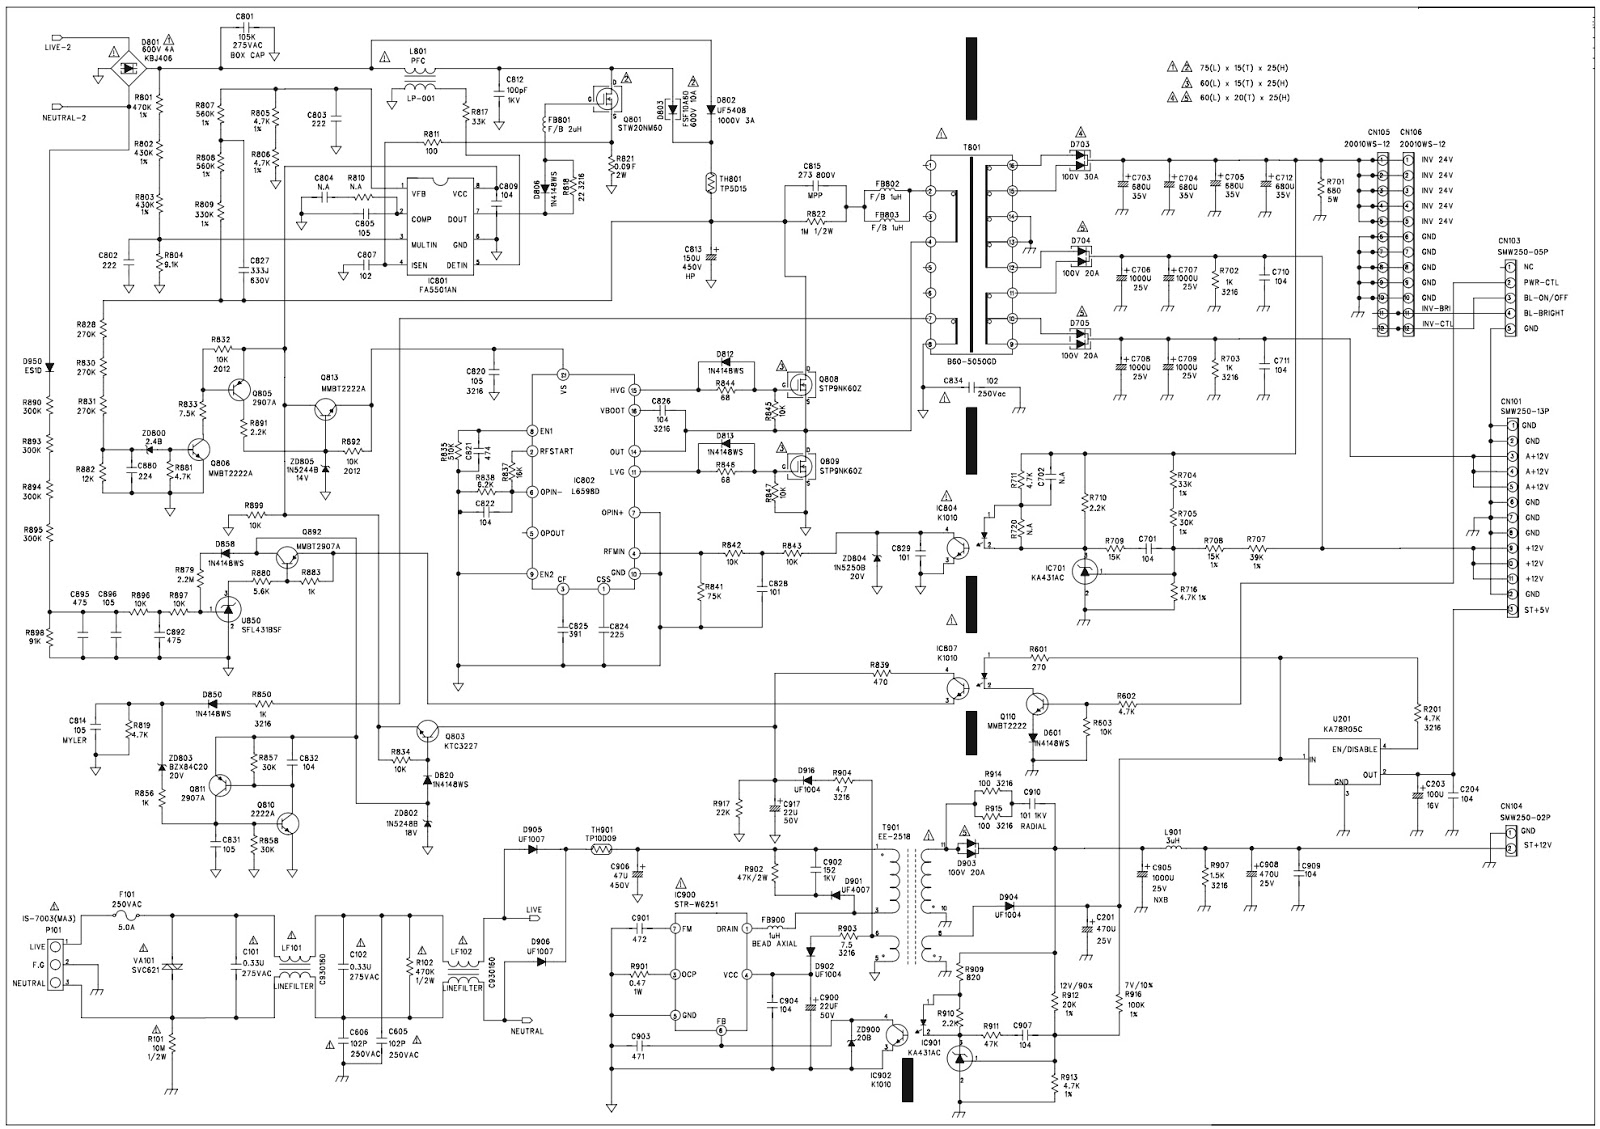 small resolution of lcd tv schematic diagrams wiring diagram toolbox lg television schematic diagram lg 26h1dc1 lcd tv smps